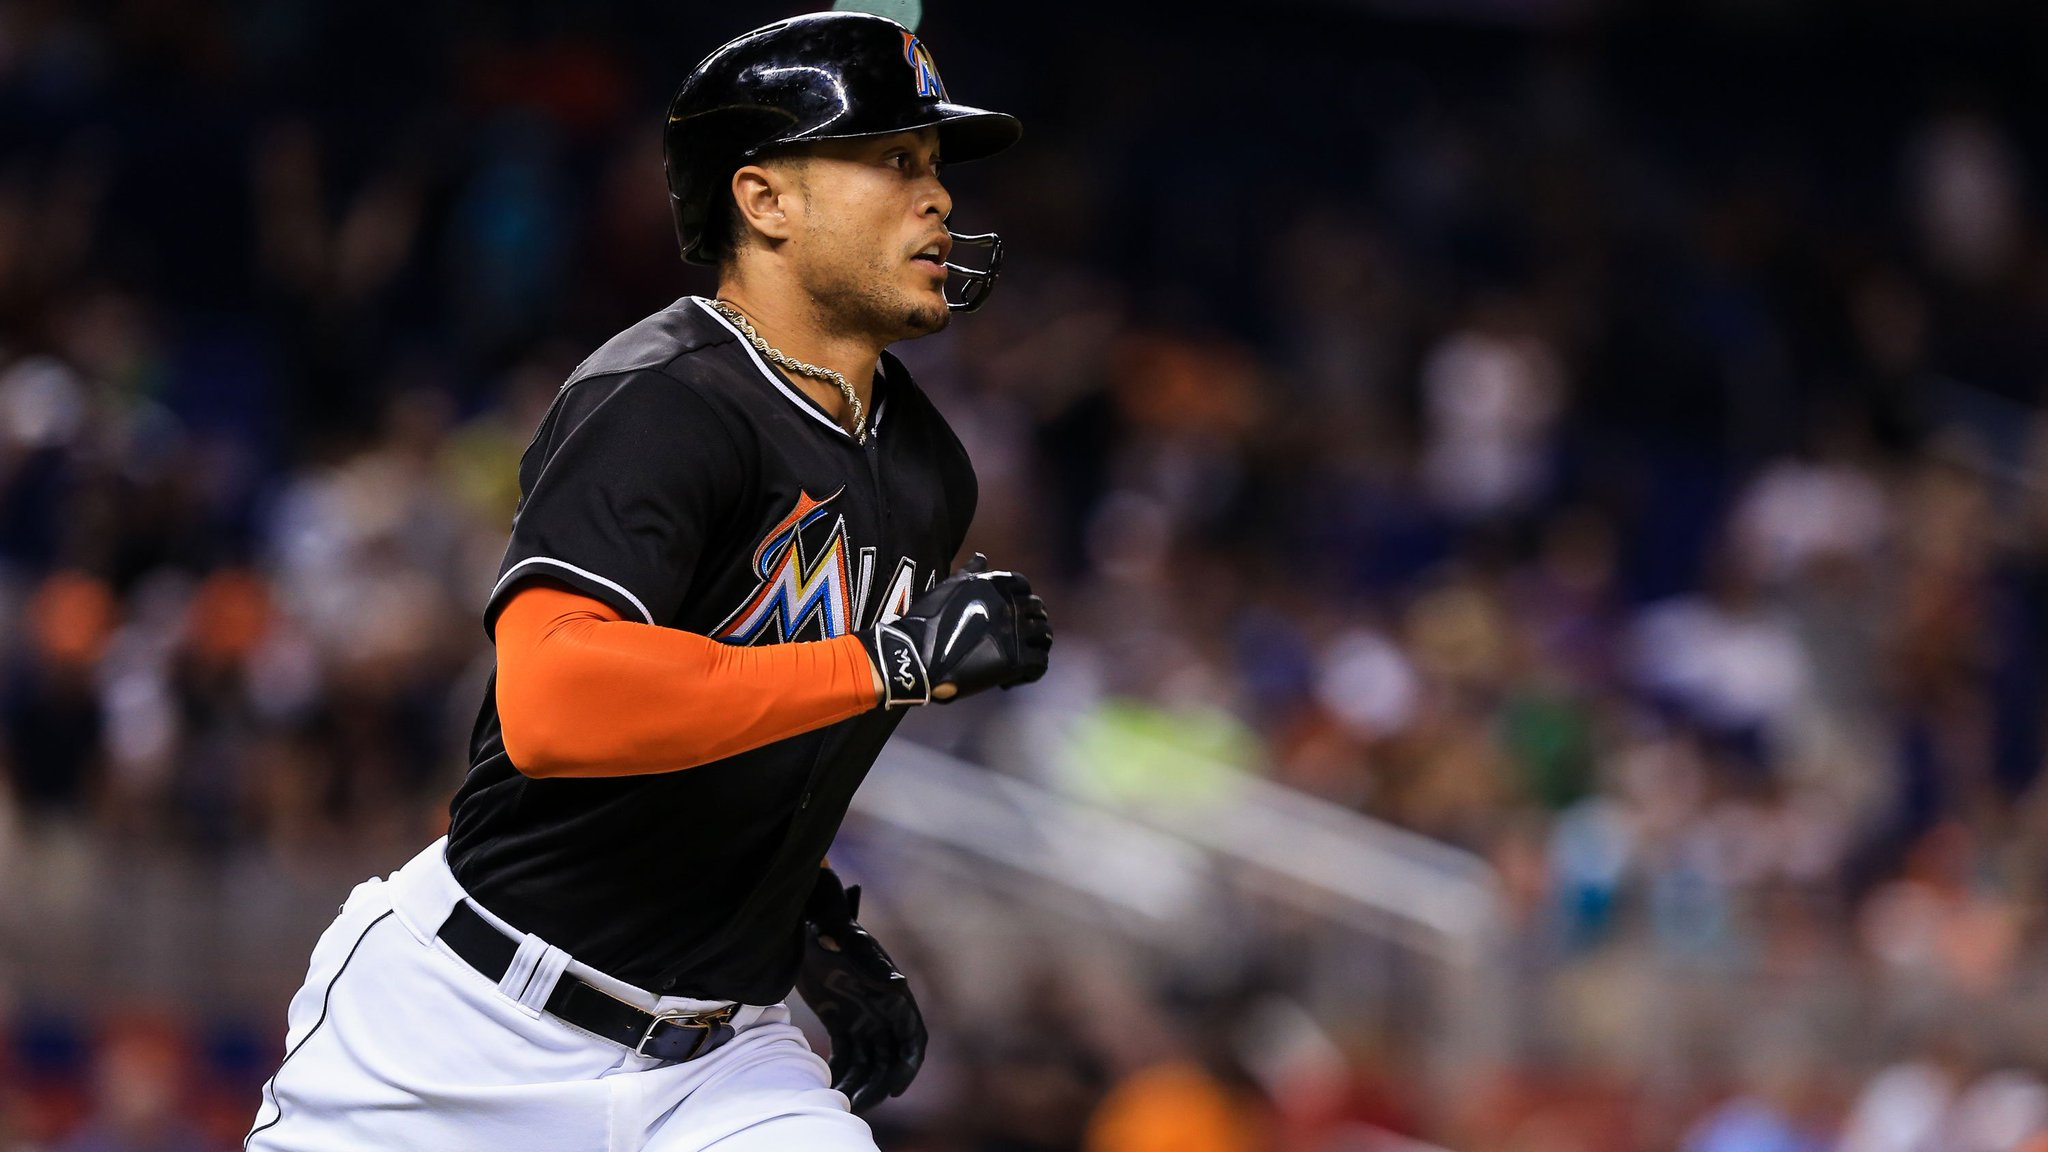 Giancarlo Stanton has now homered in six consecutive games https://t.co/hkgj8dwzmA https://t.co/FpjAFeEpve